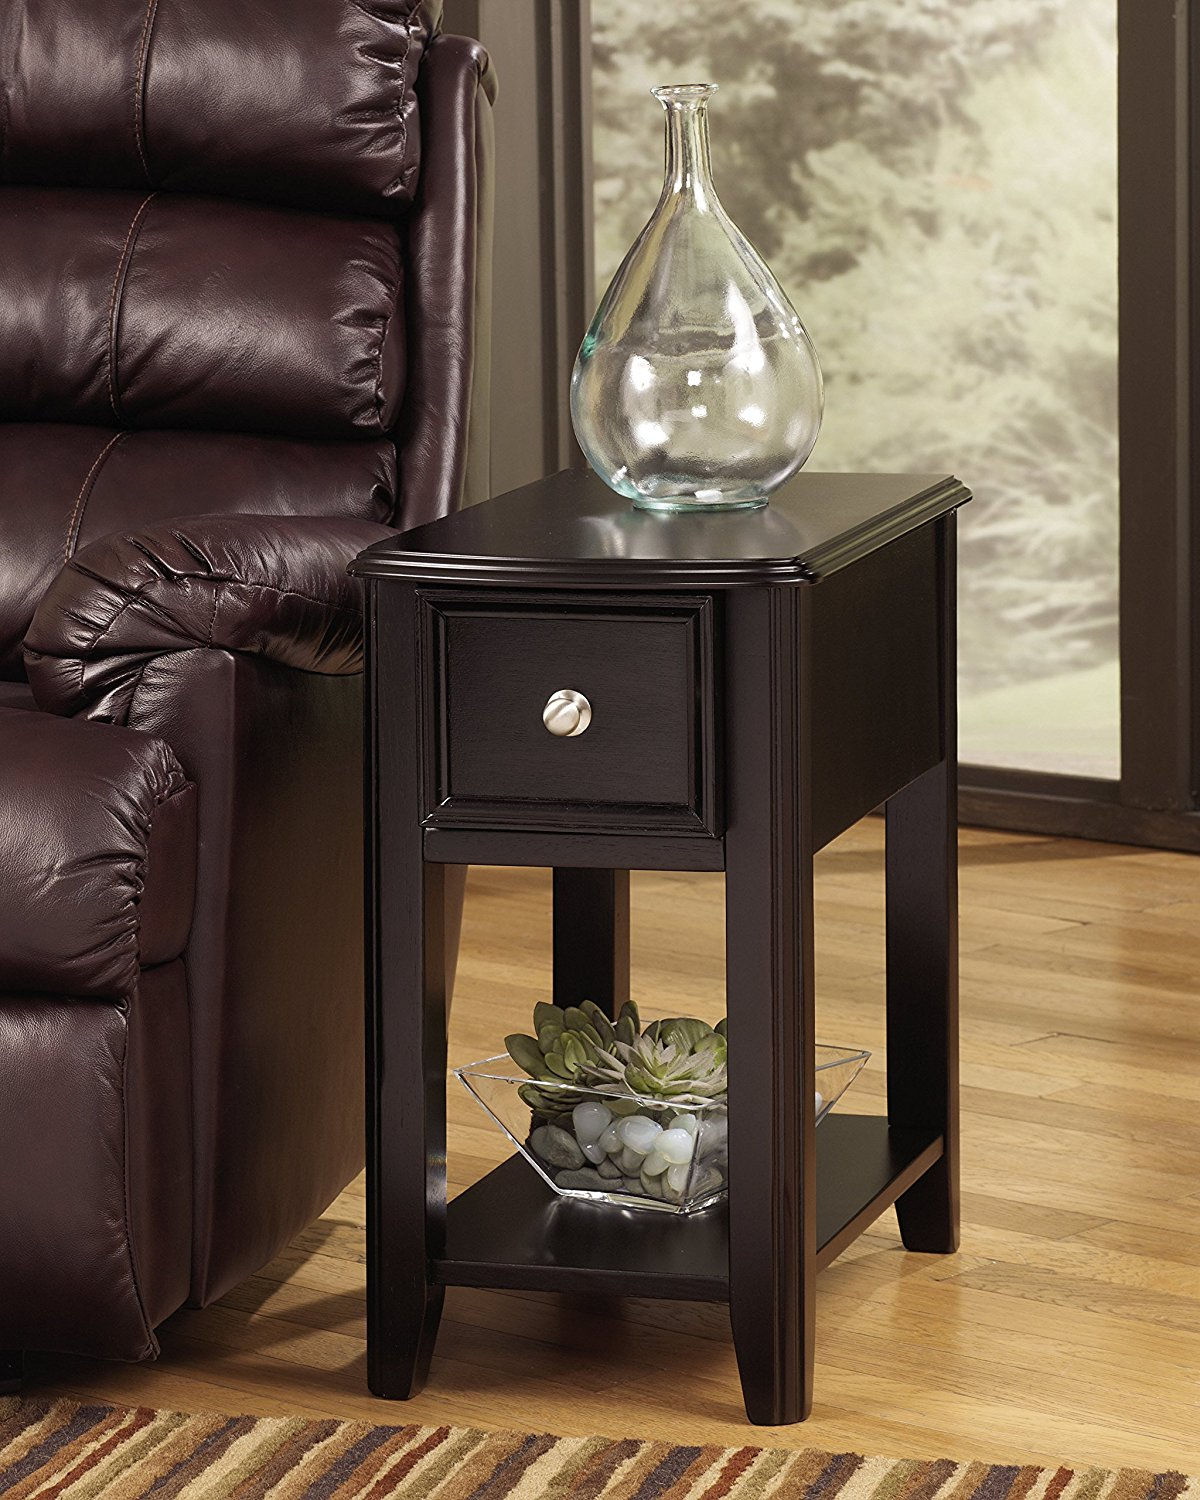 terrific small side table options for your living room ashley signature design breegin chair end rectangular accent furniture with nickel tone hardware and wooden cabinet pretty